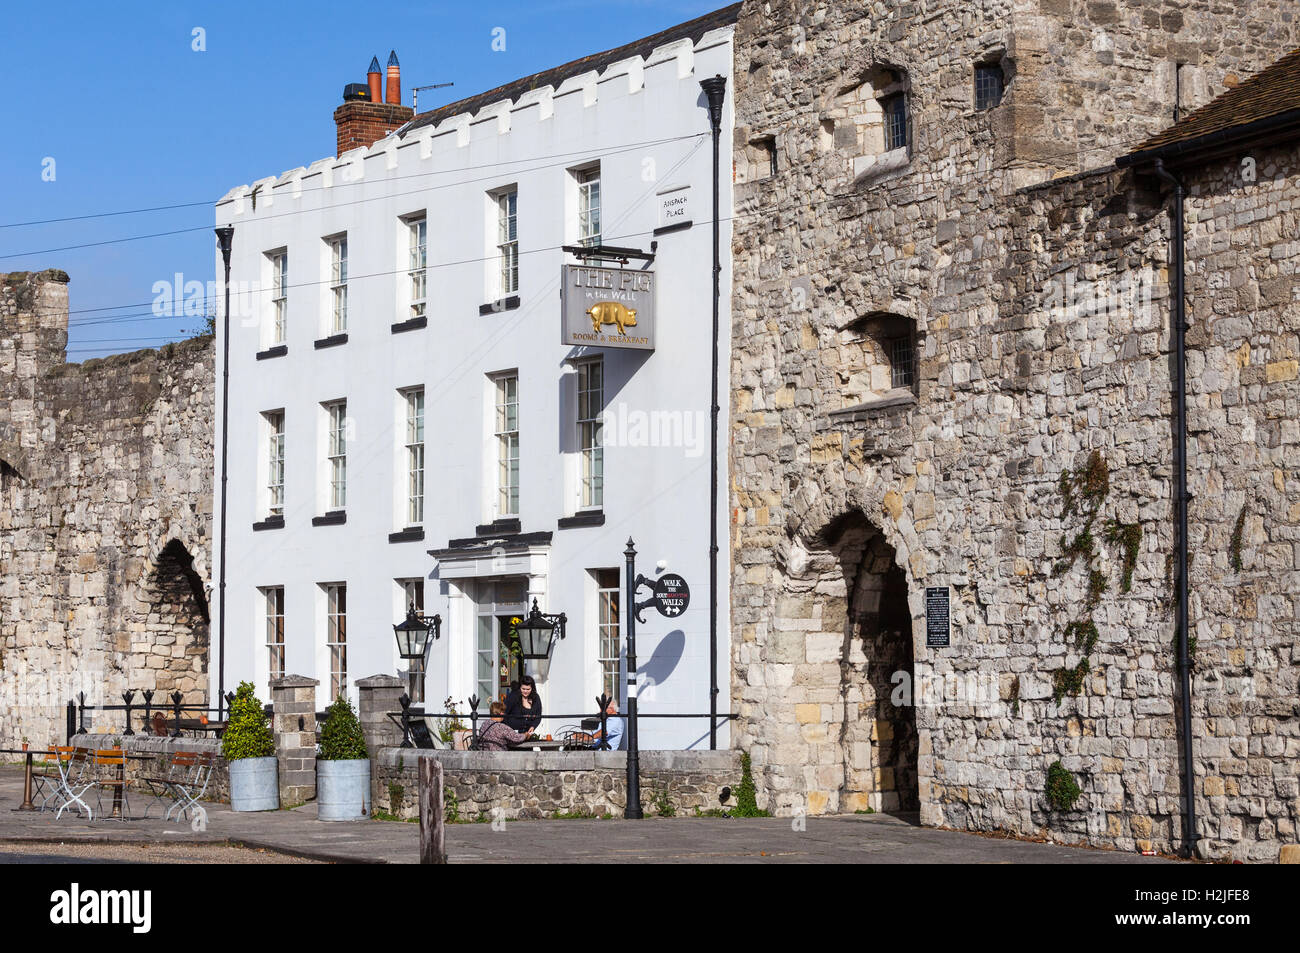 The Pig in the Wall boutique hotel and restaurant located amongst the historic walls of Southampton - Stock Image